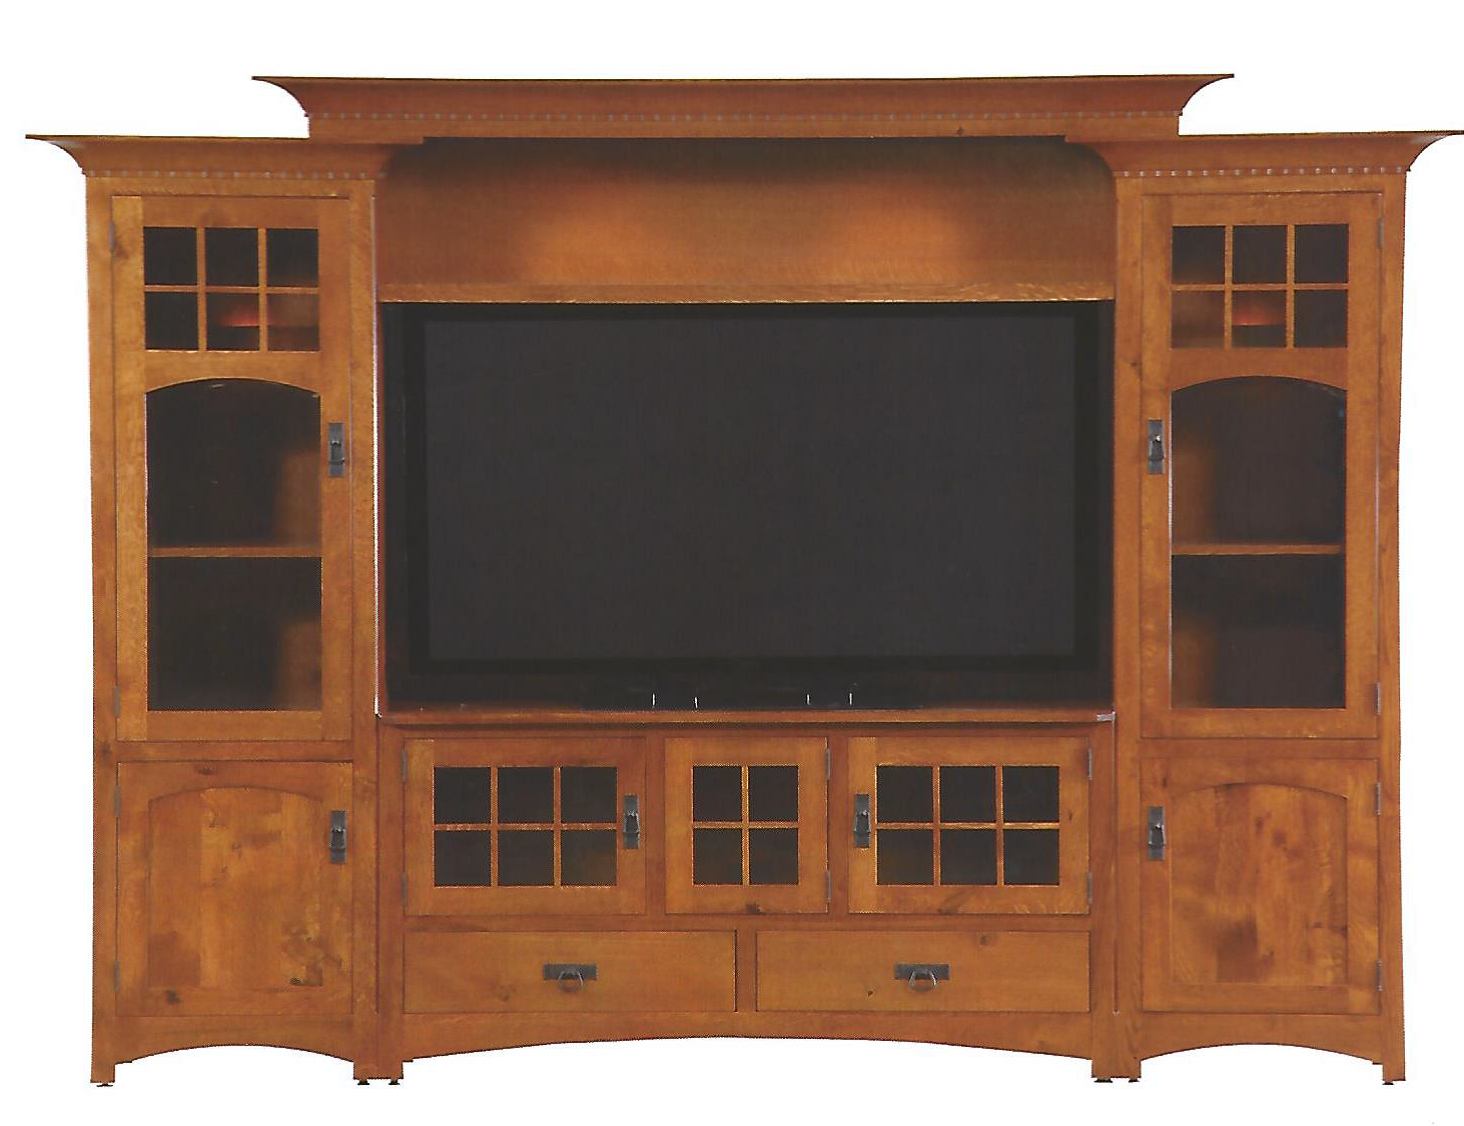 Handmade Winchester Bridge Wall Unit Entertainment Center In Rustic Quartersawn White Oak By